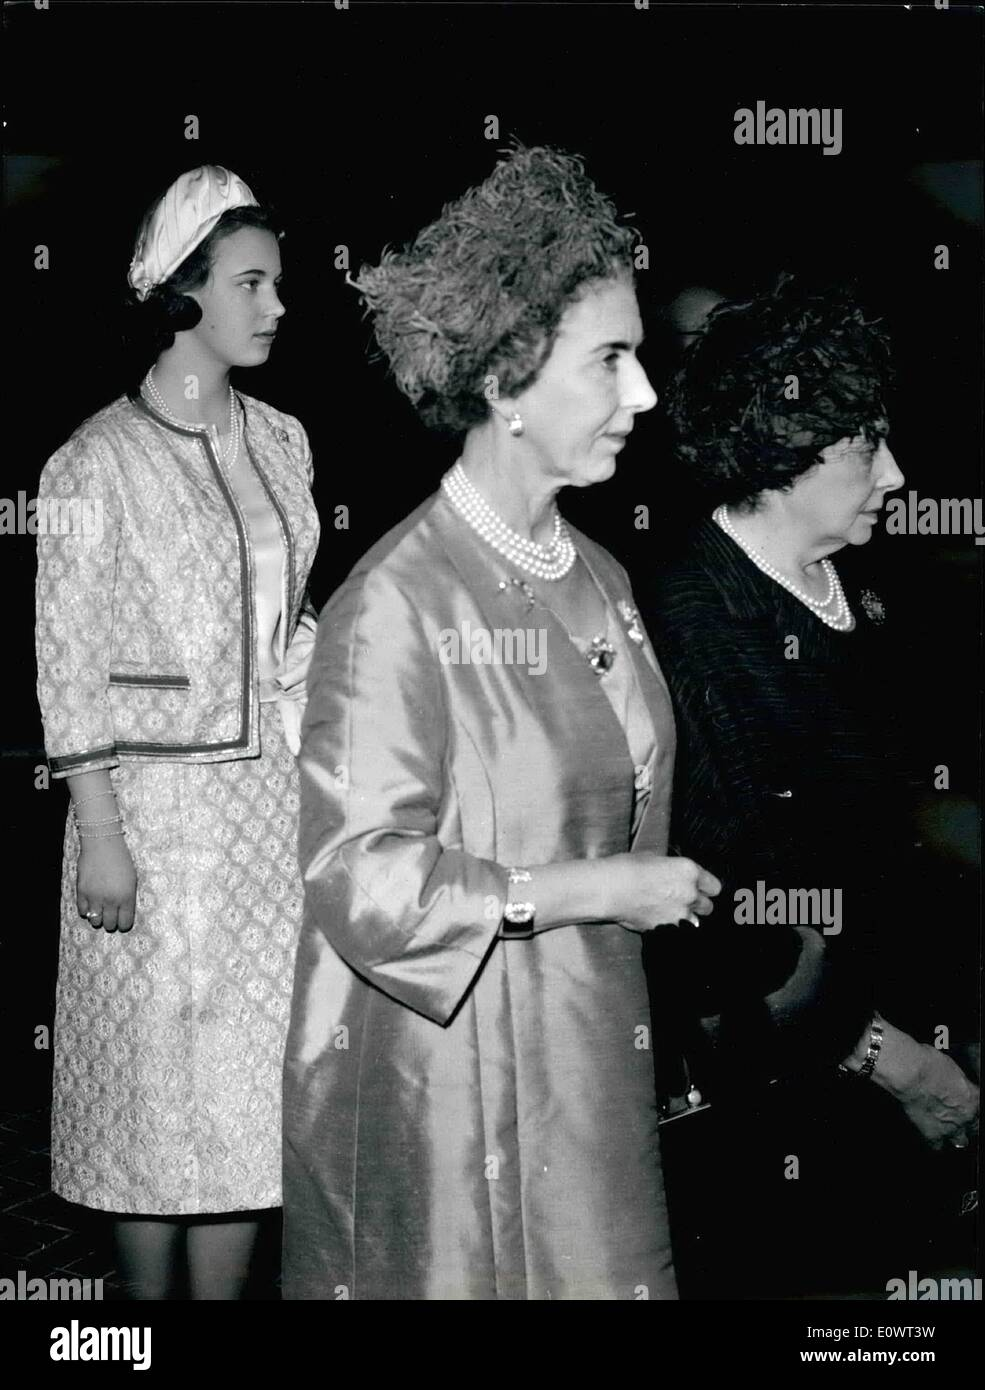 Apr. 04, 1964 - Rome, April 20th, 1964 - The Royale couple of Denmark King Frederick and Queen Ingrid arrived this morning to Rome for a three days official visit. The King and the Queen were accompanied by Princess Benedikte and by Foreign Minister Per Haerkkerup. The Royale guests were welcomed by Italian President Antonio Segni and Prime Minister Aldo Moro. - Stock Image